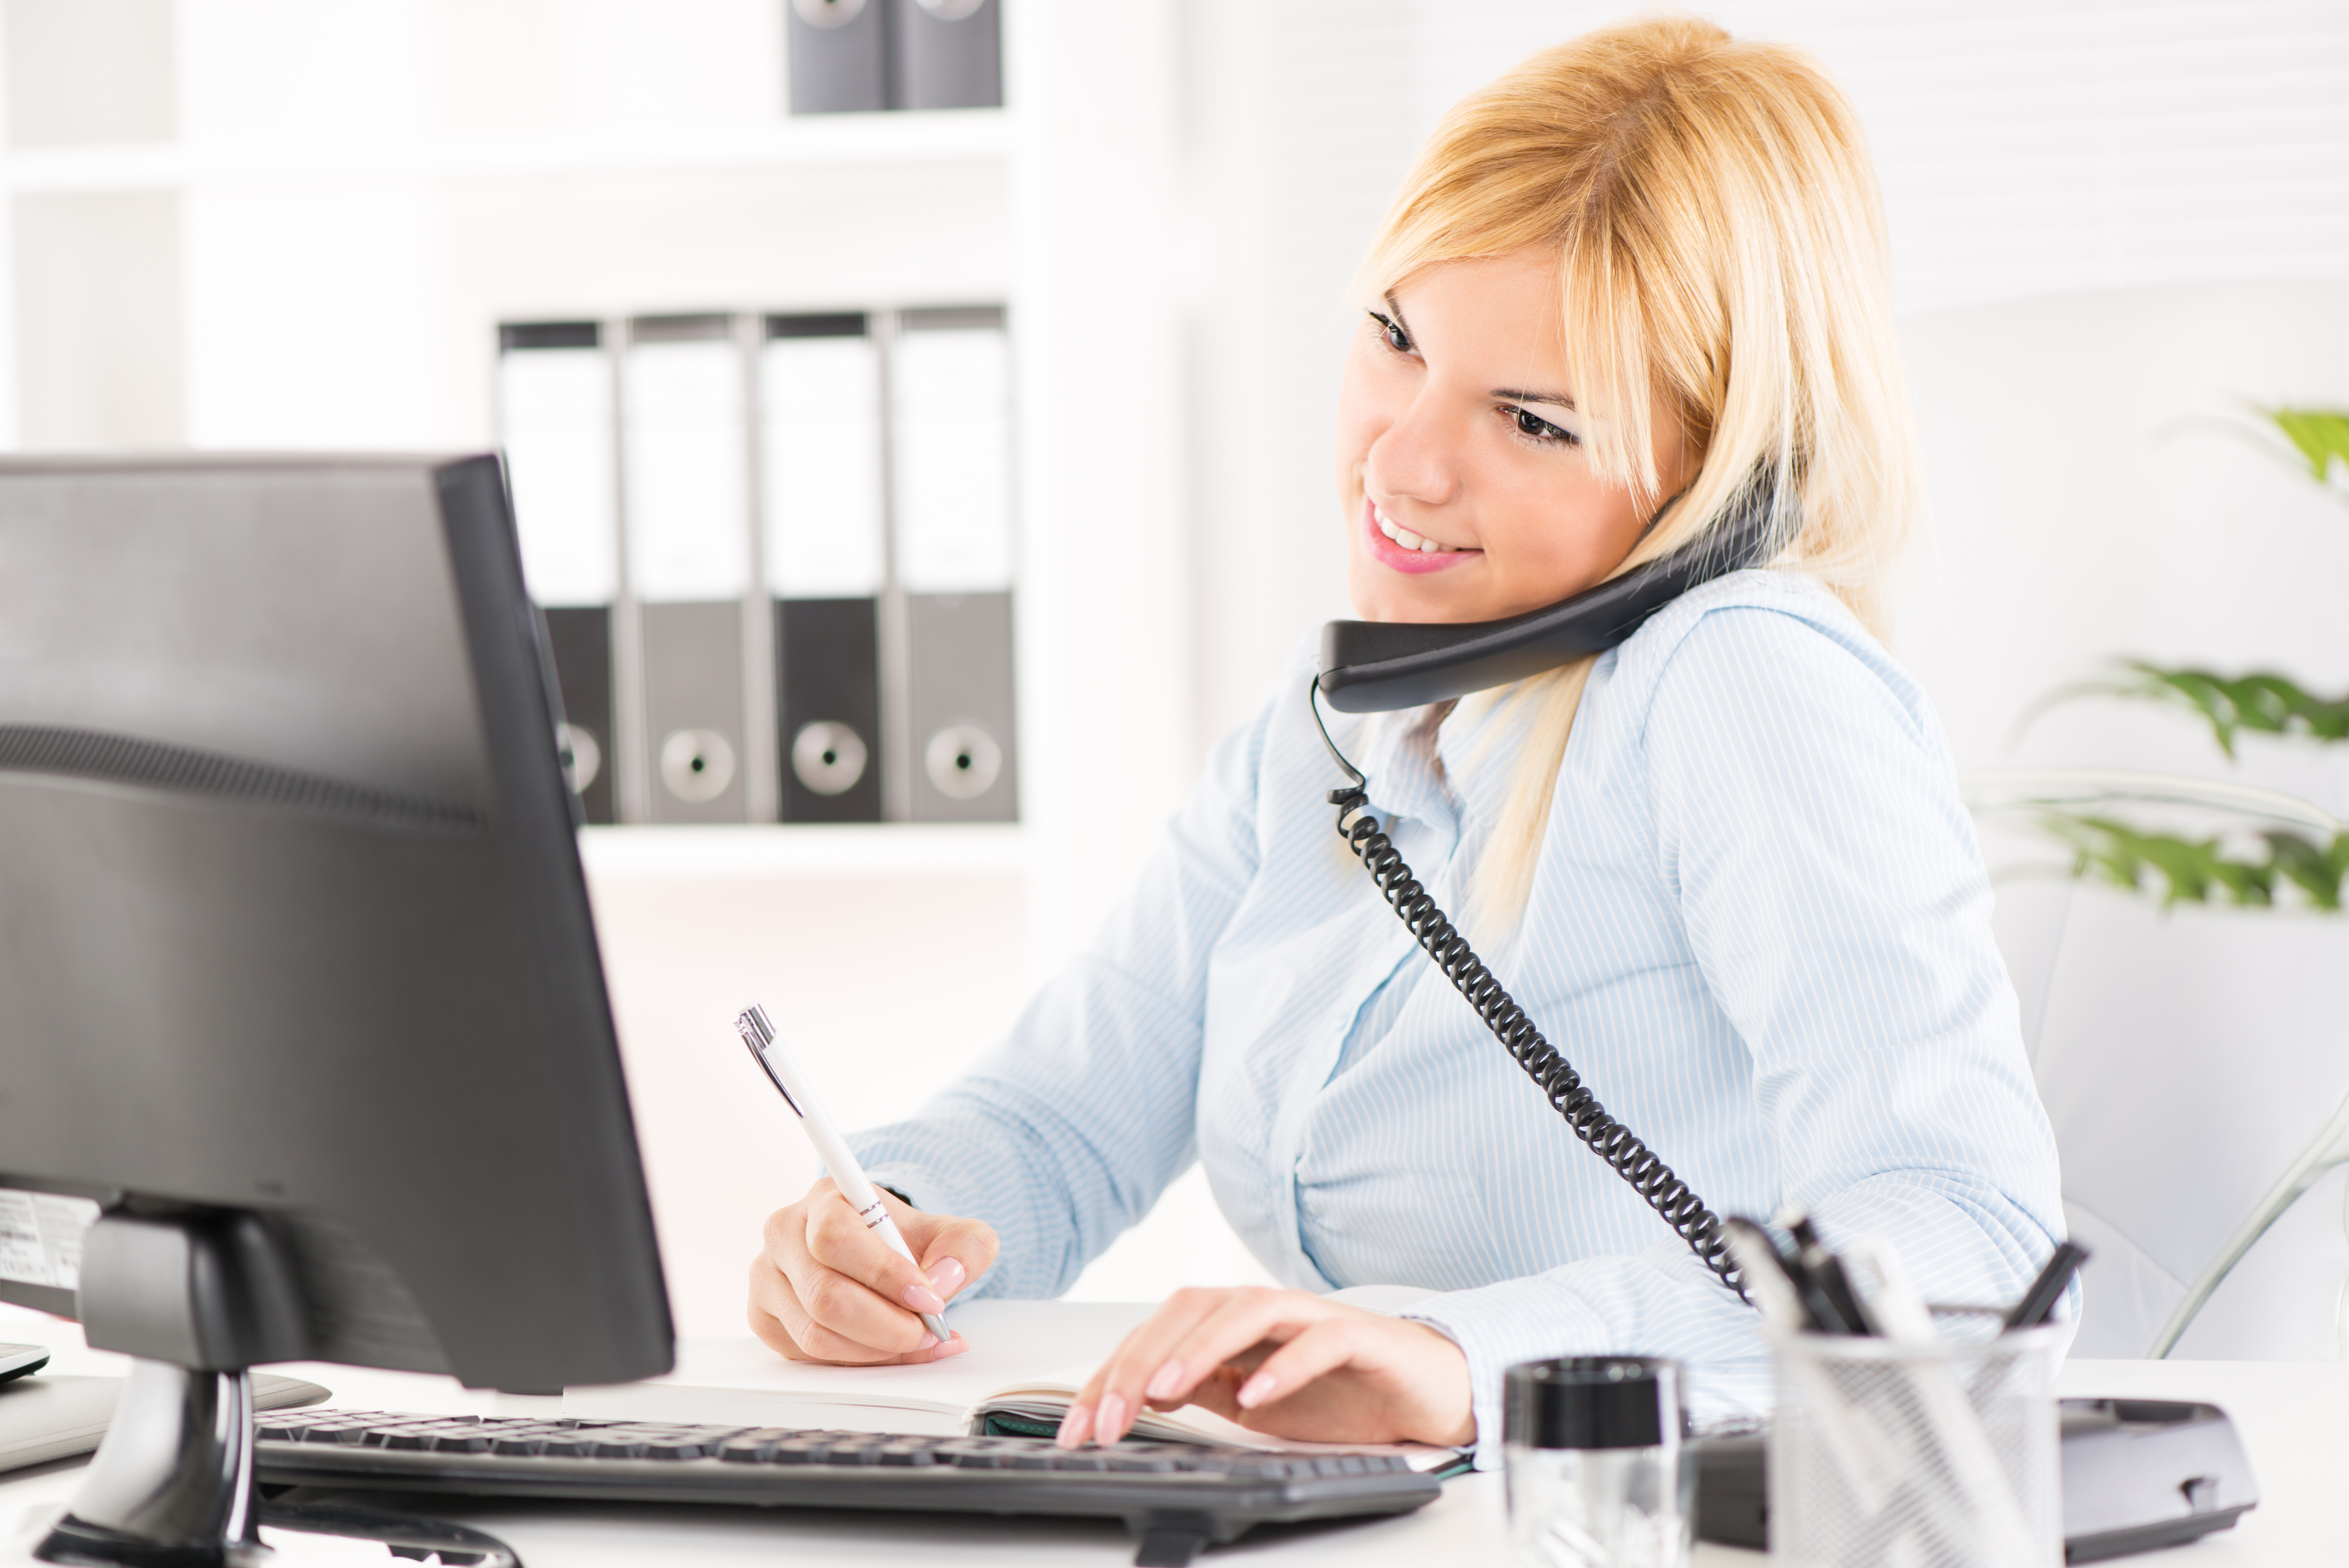 administrative assistants from 10 an hour st louis 63141 centerco